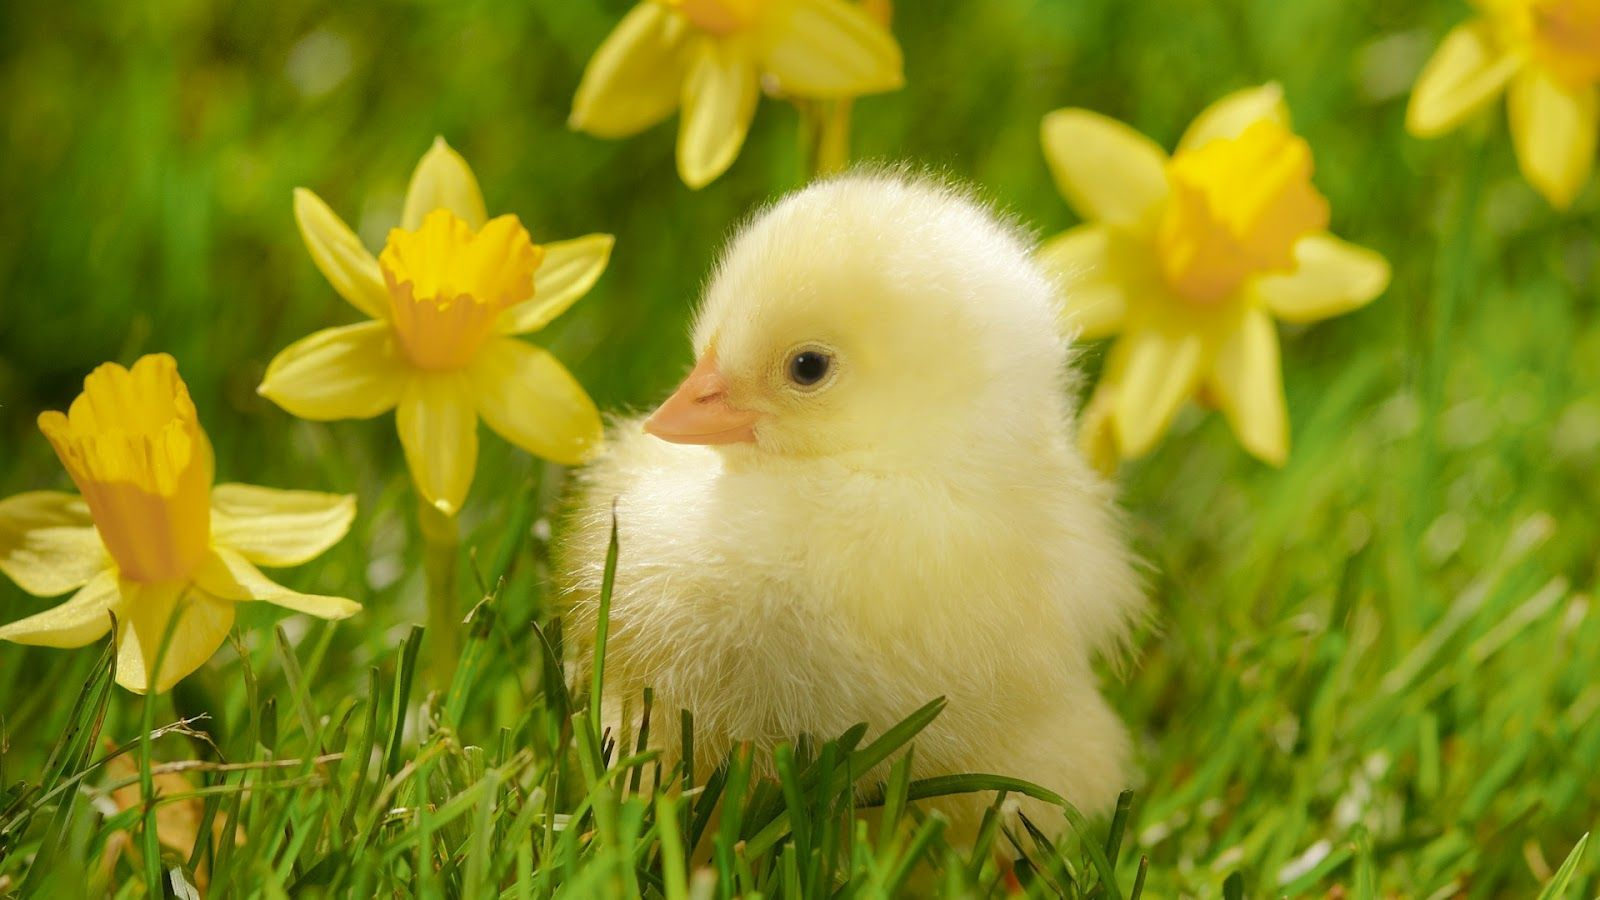 Baby Animal Wallpapers Group (60+)